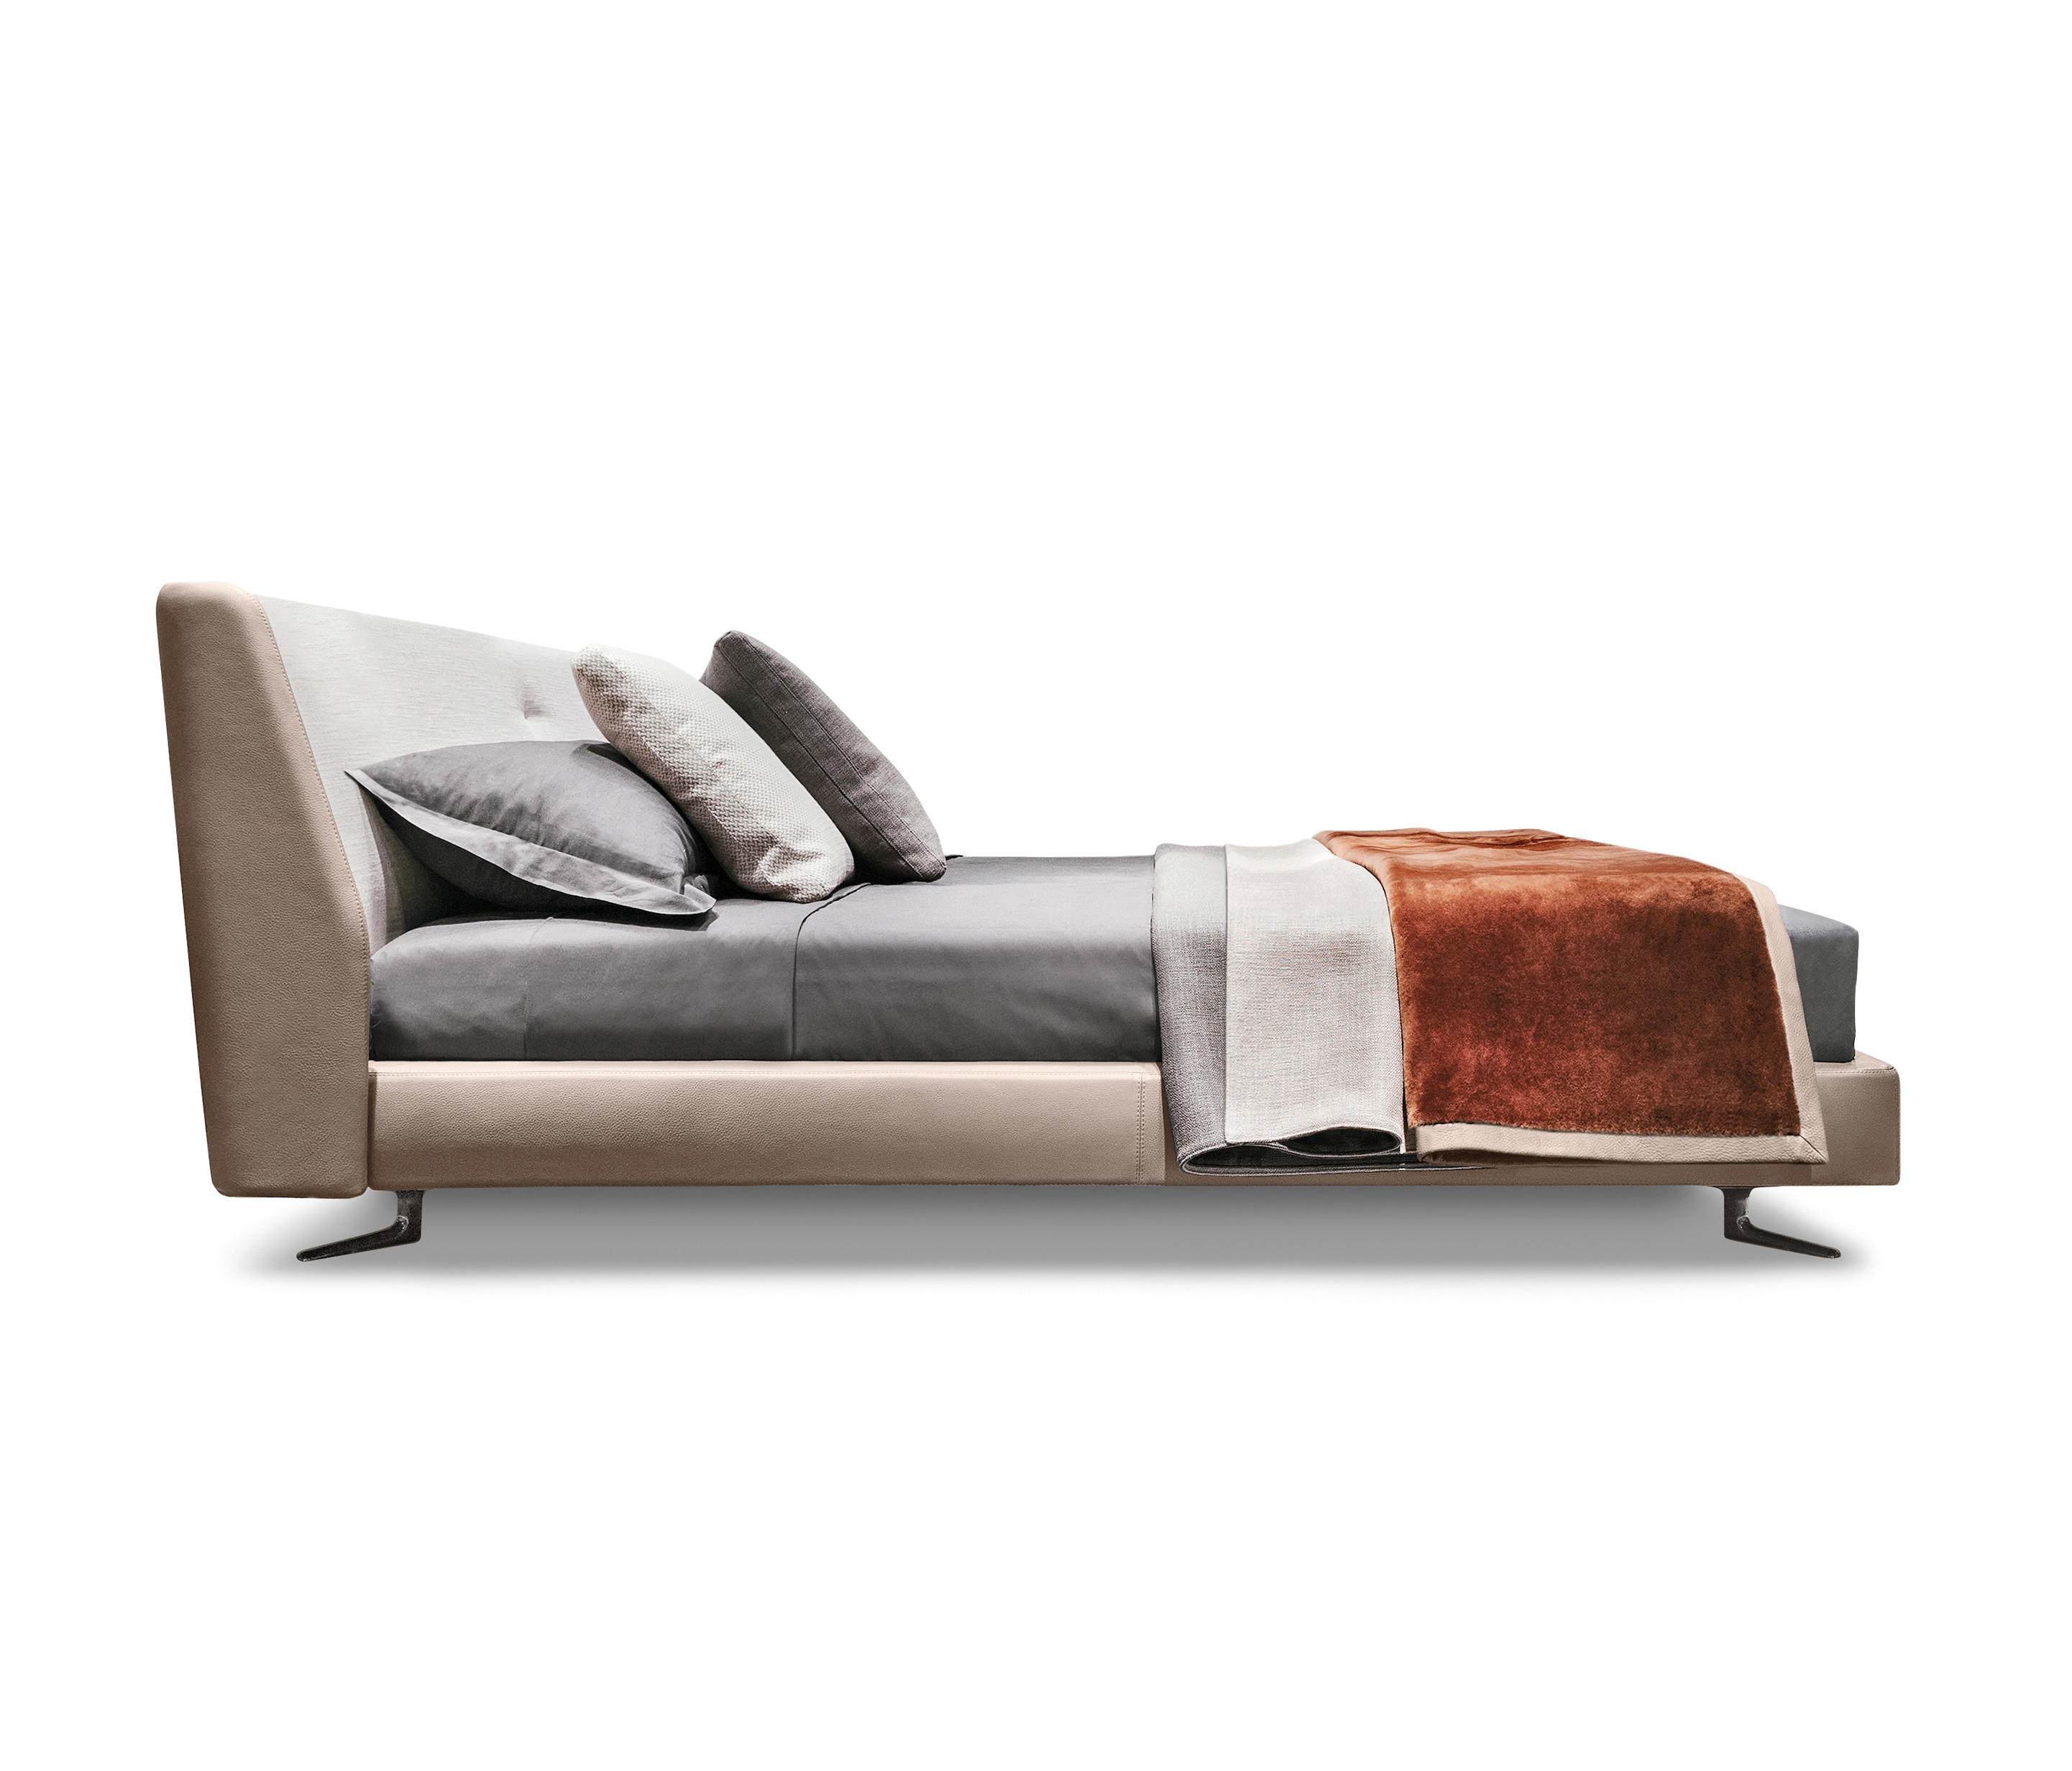 Spencer Bed Double Beds From Minotti Architonic